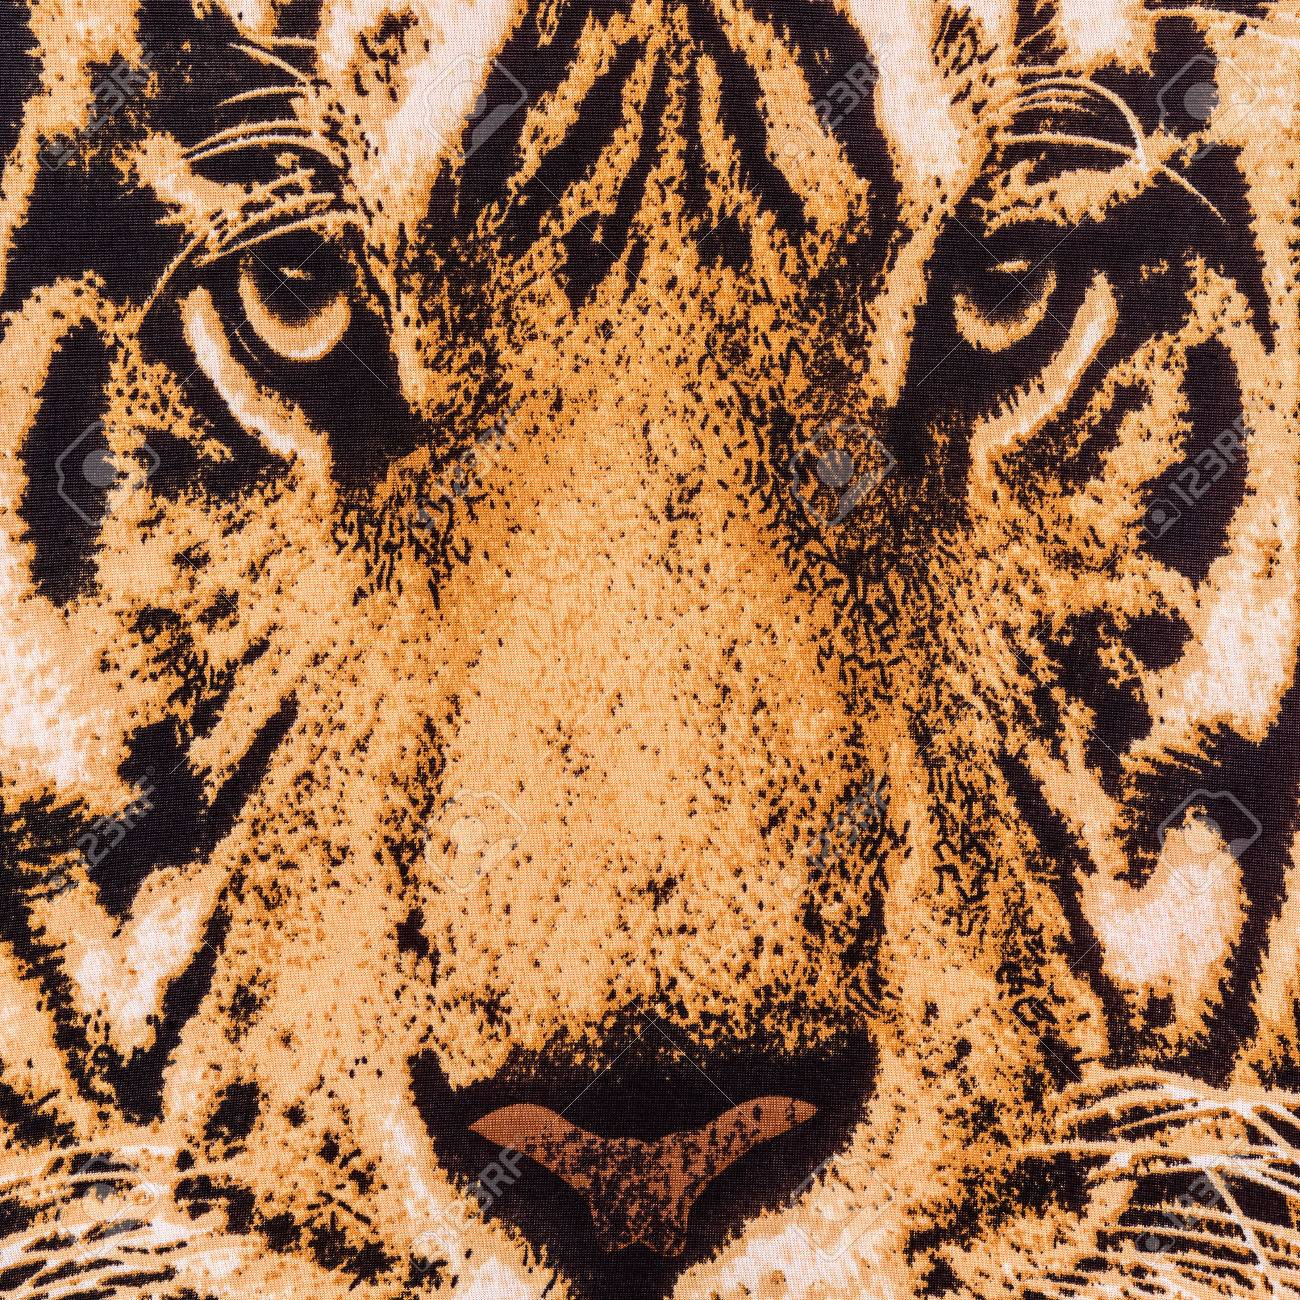 texture of print fabric striped the tiger face for background